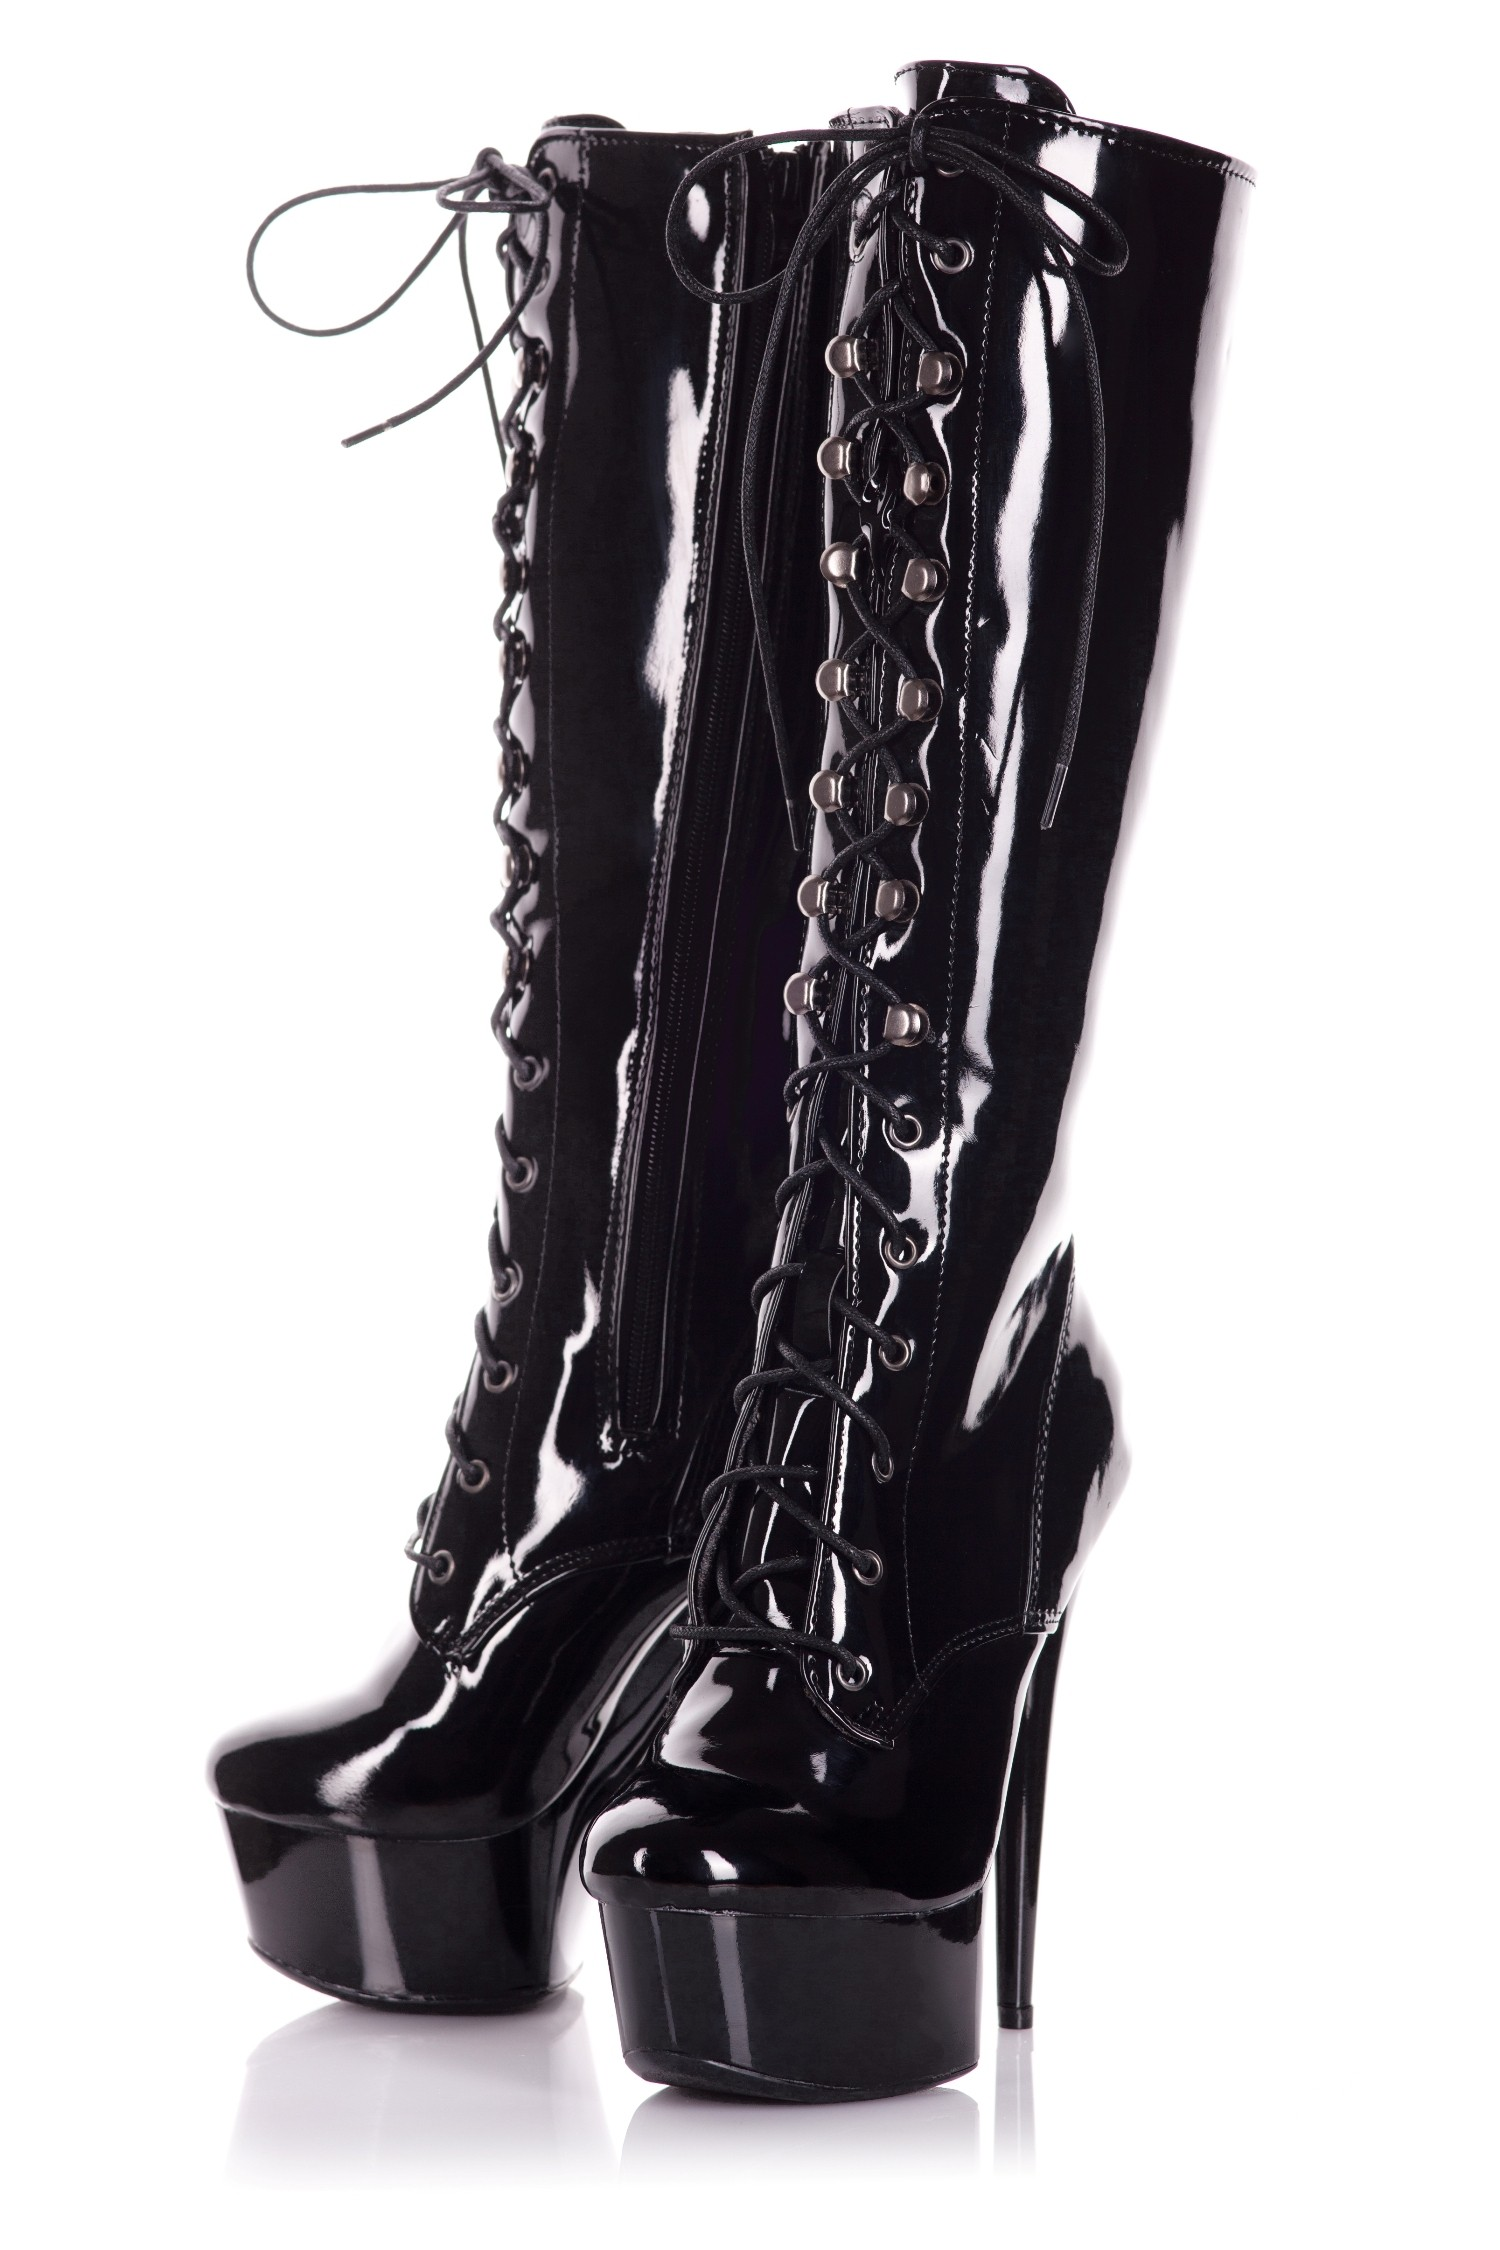 Playgirl Knee High Black Patent Lace Up Boots